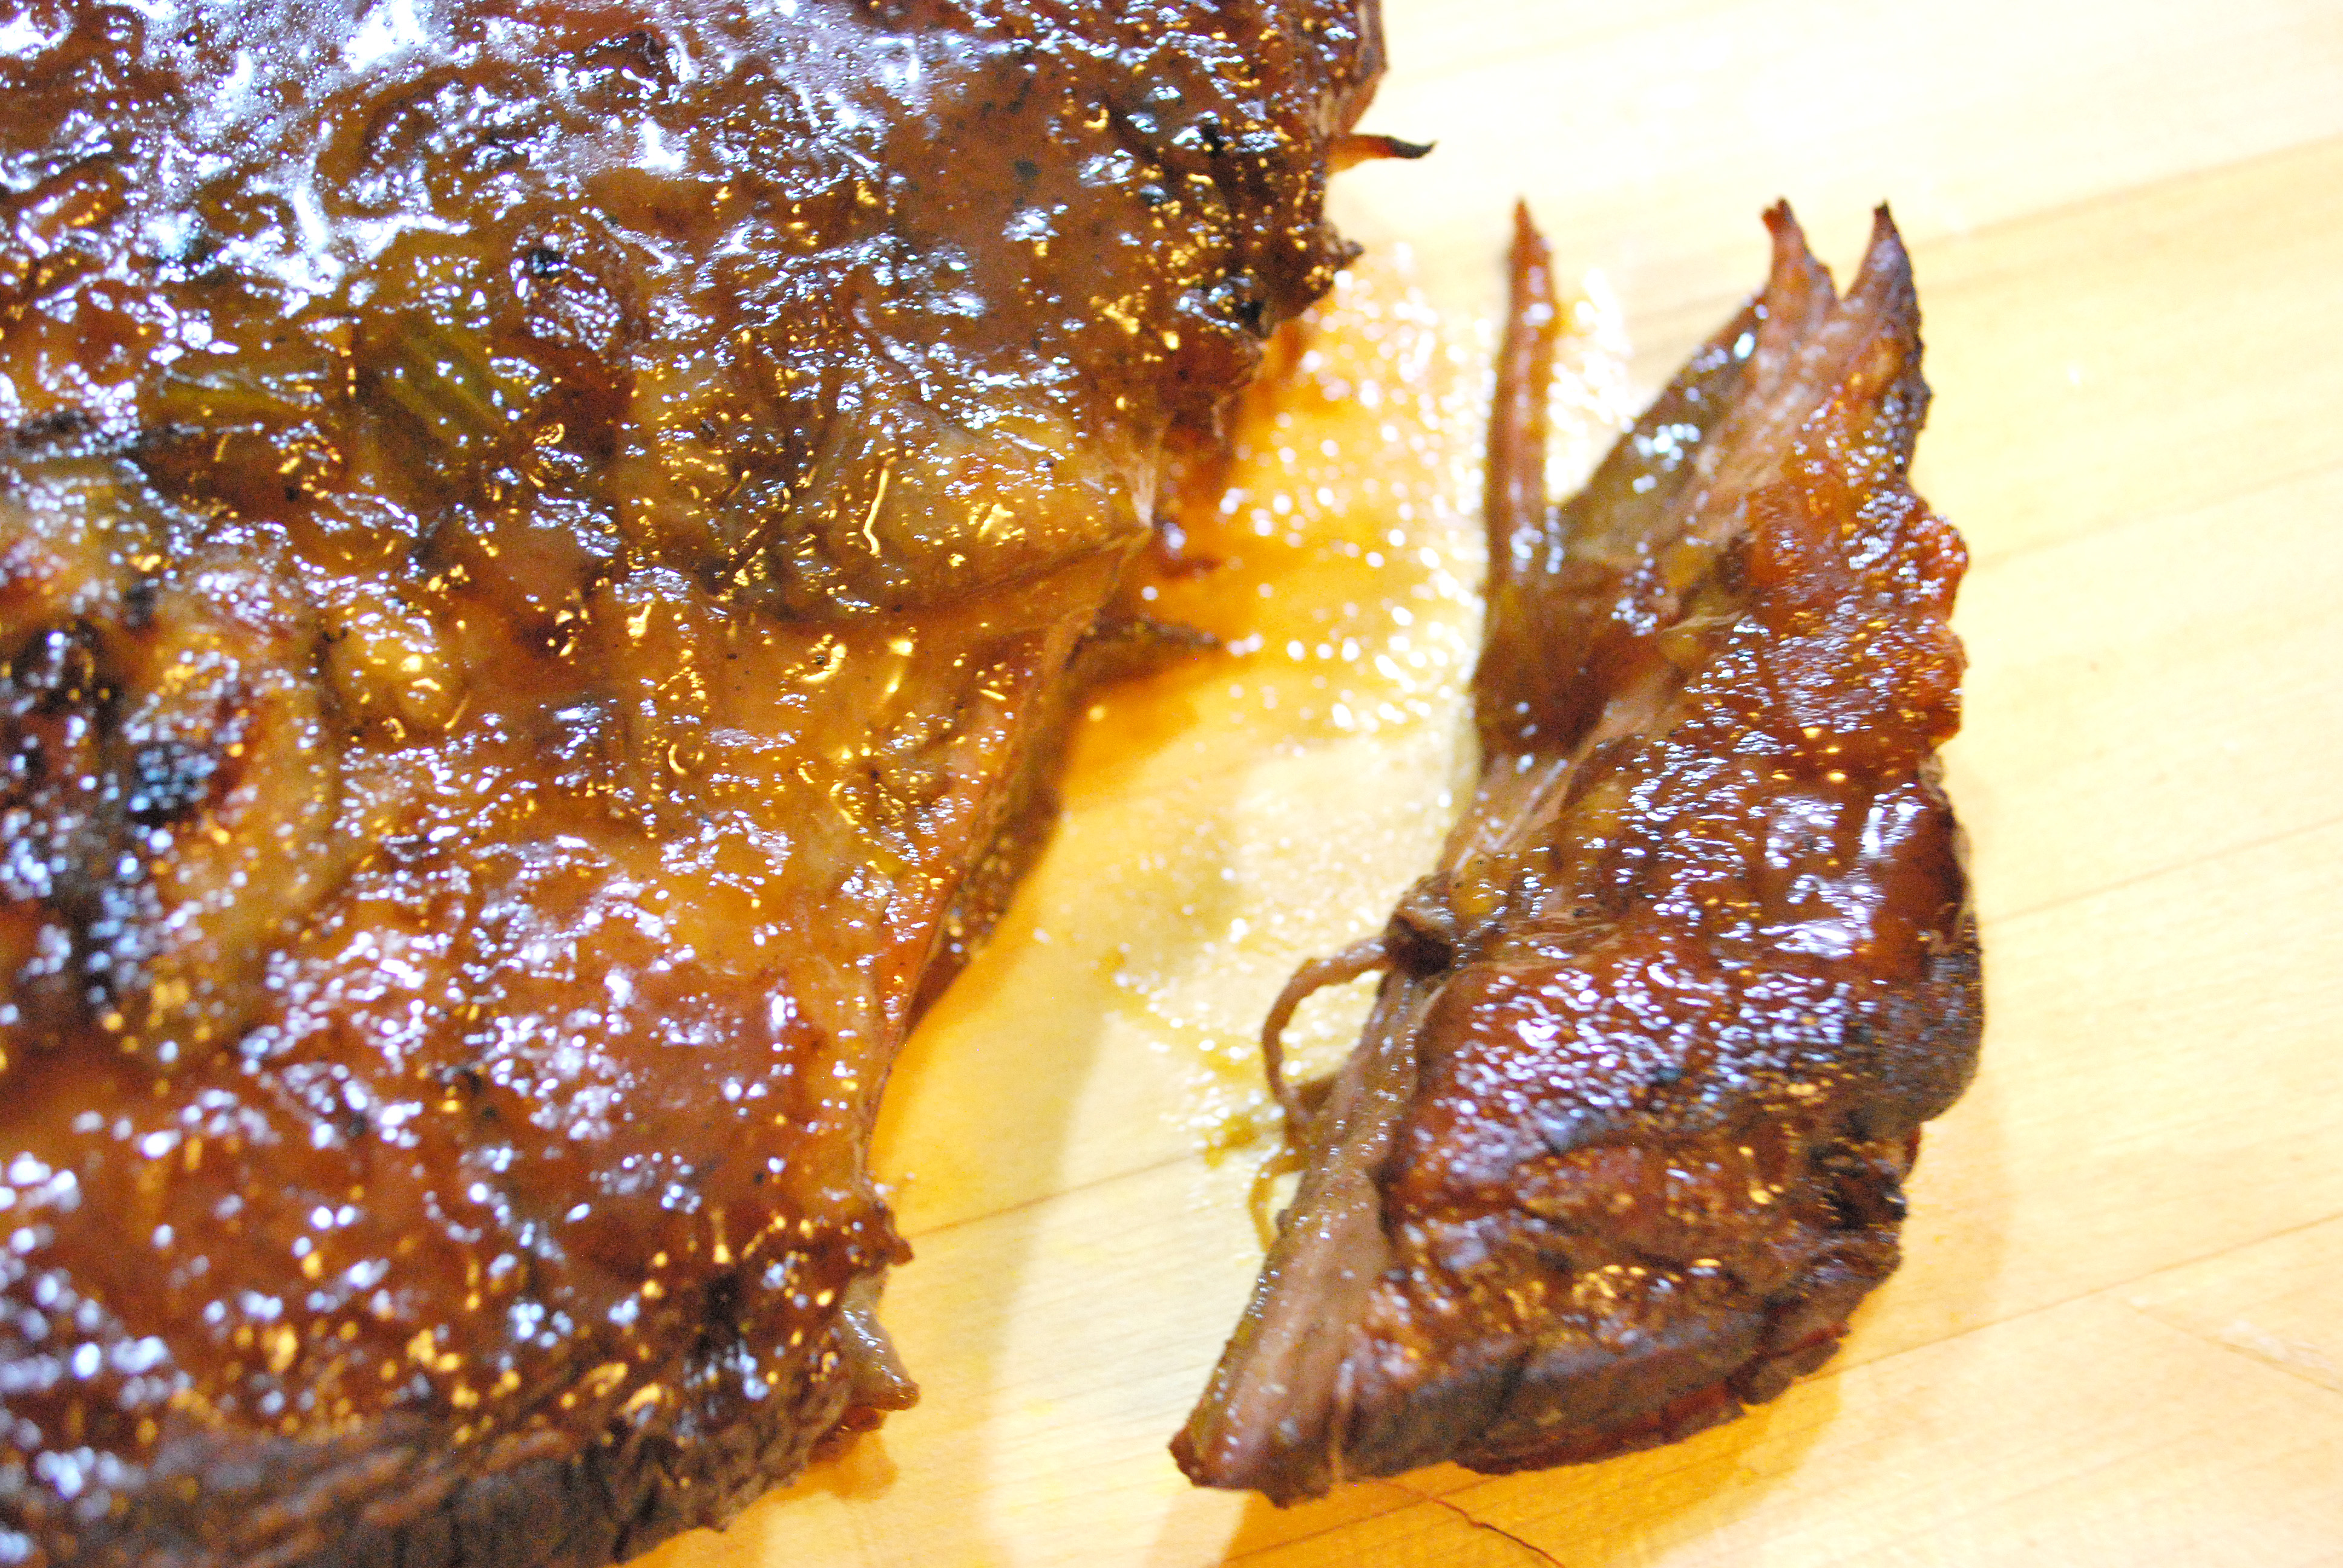 Braised Beef Brisket with Bourbon-Peach Glaze | Hungry Beats